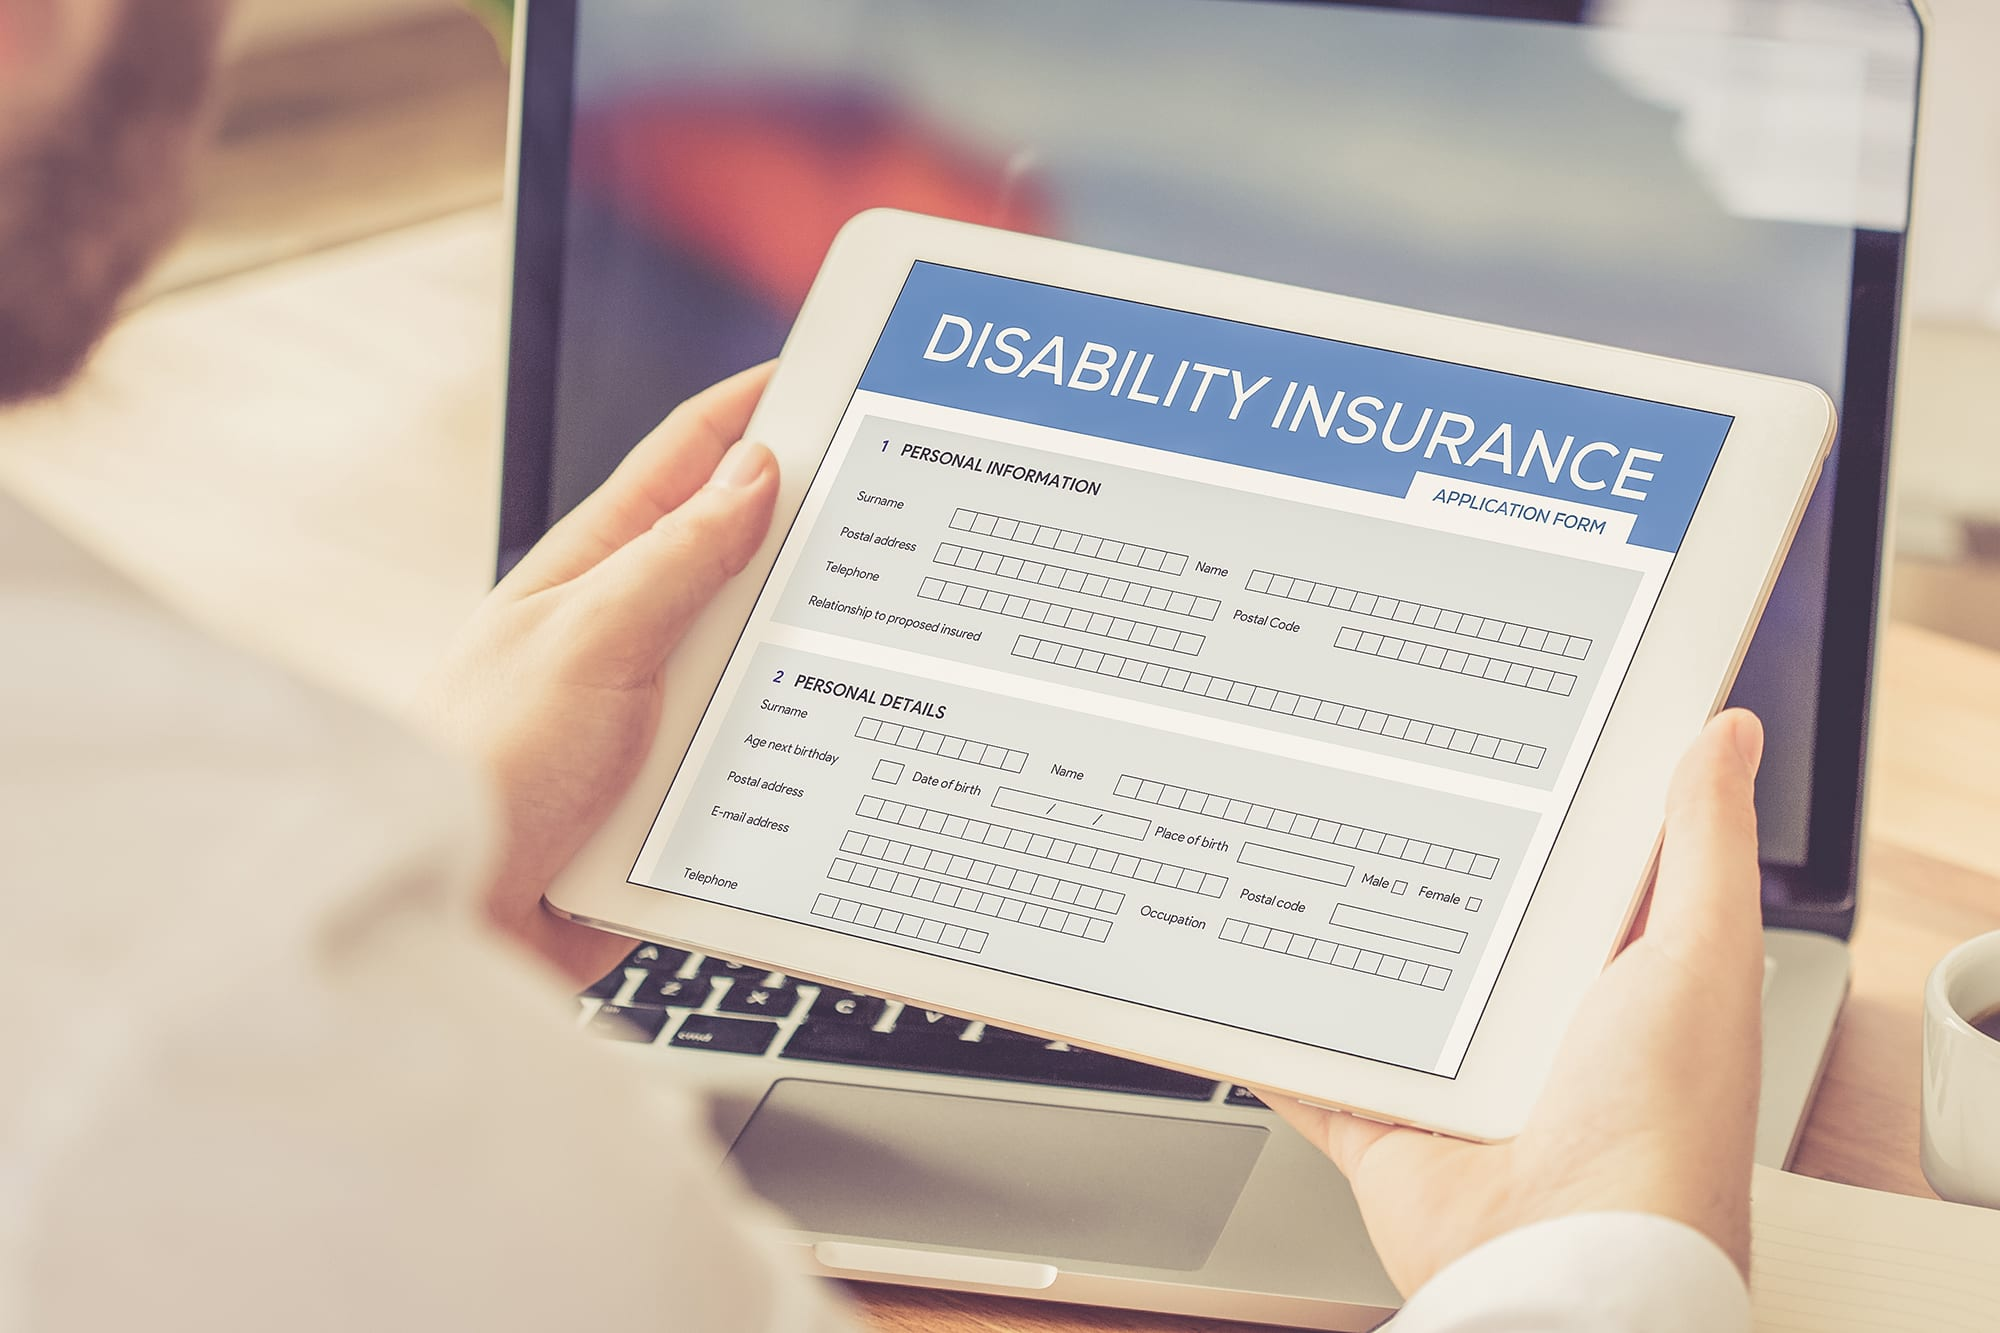 Beware The Doctors Disability insurance Scam